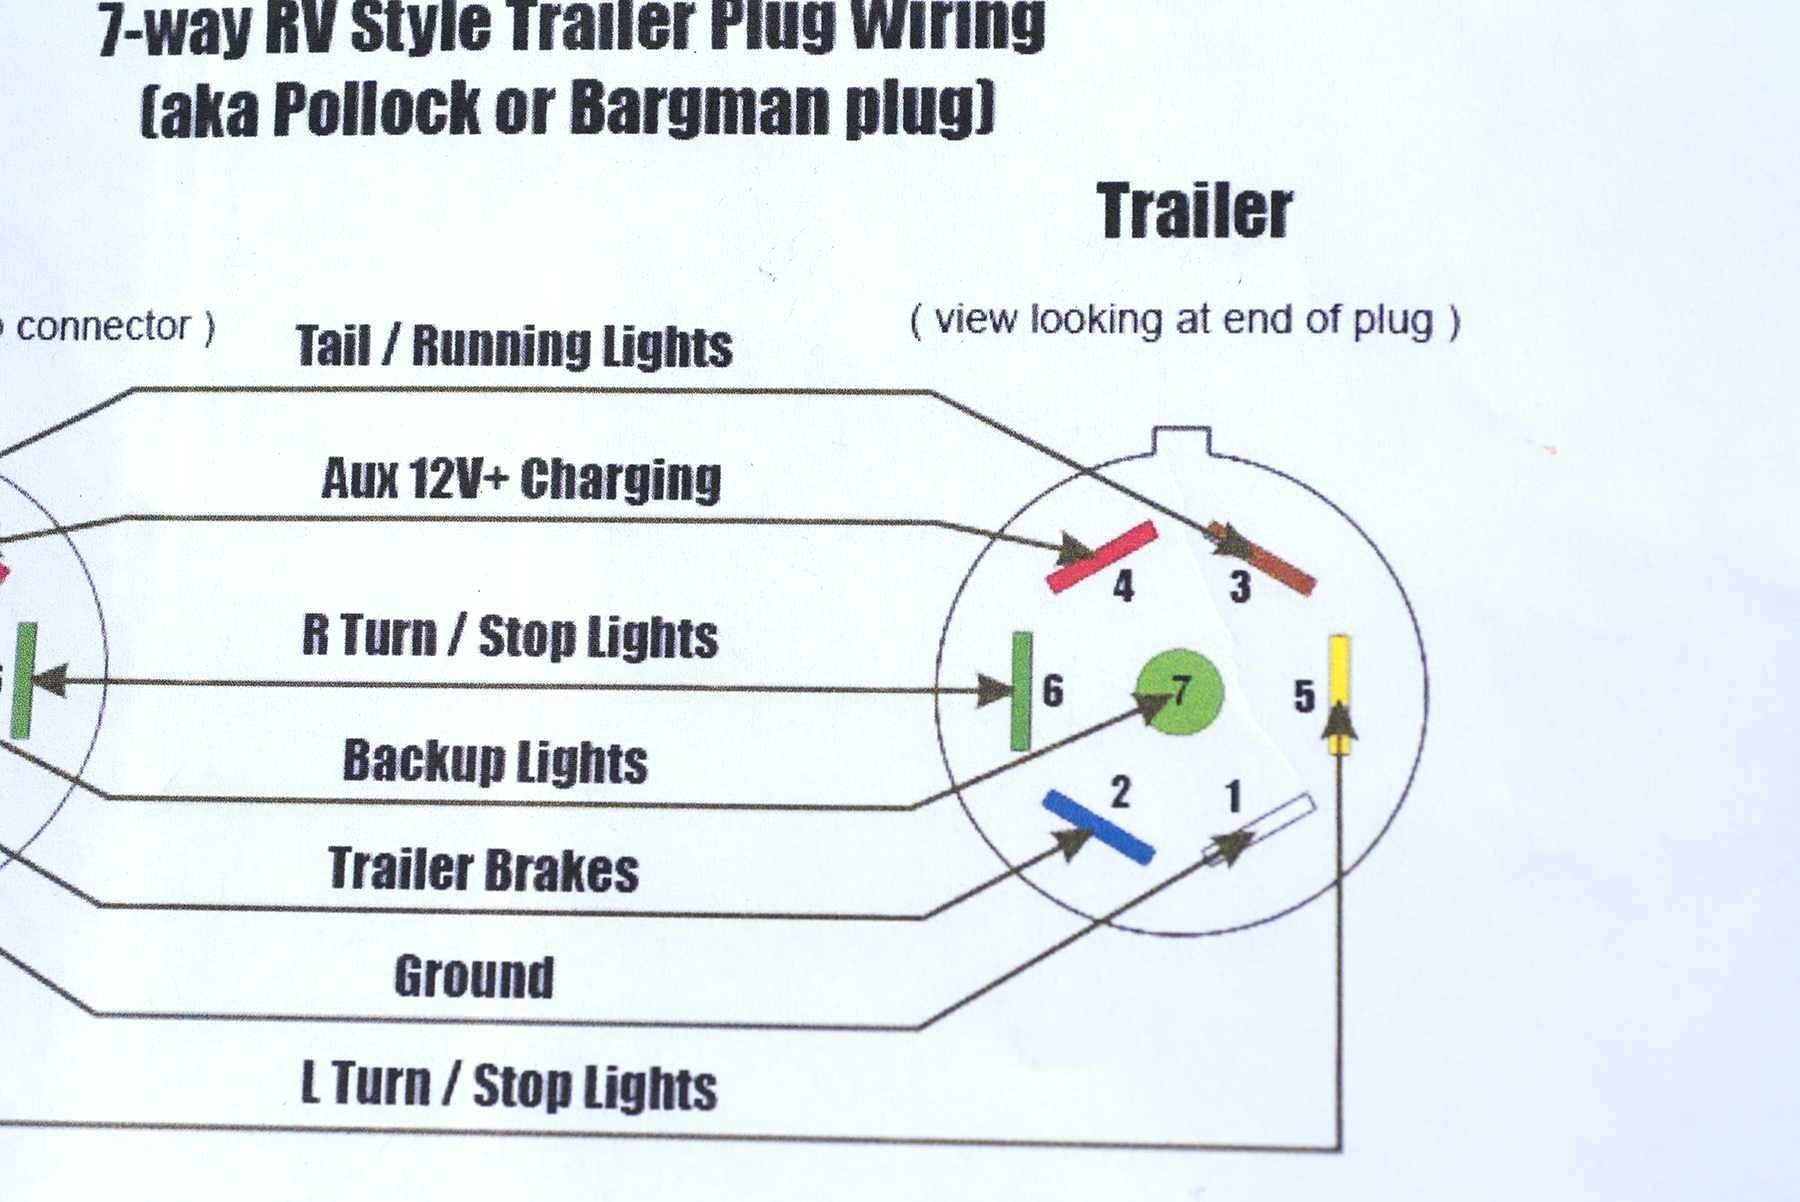 Chevy 7 Pin Wiring Diagram - Wiring Diagrams Click - 7 Way Trailer Wiring Diagram Chevy